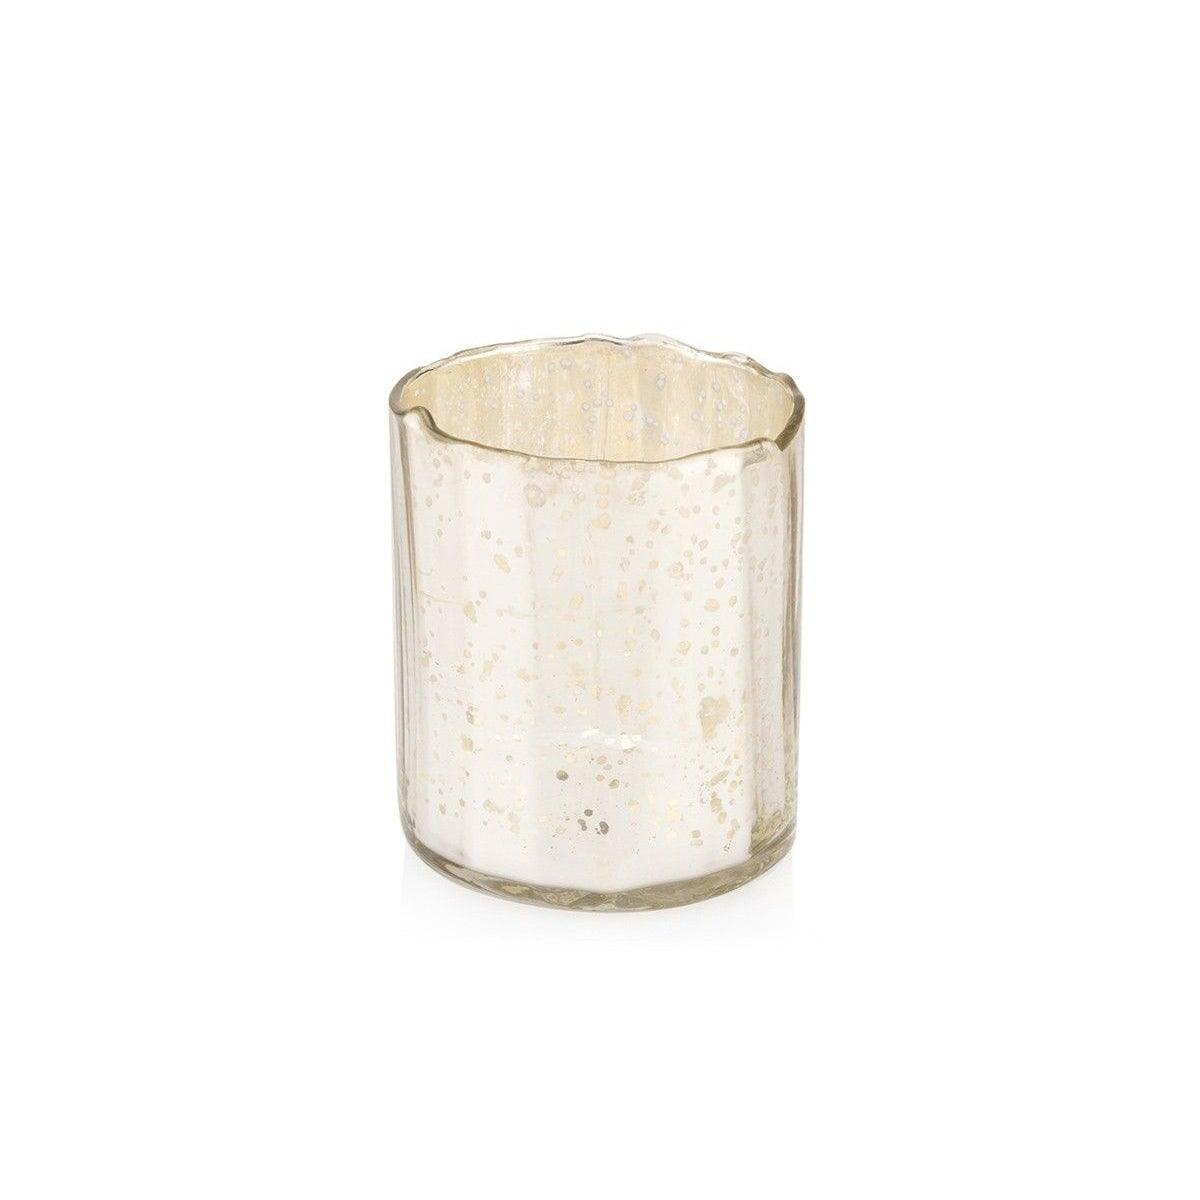 Imani Gold Candle Holder